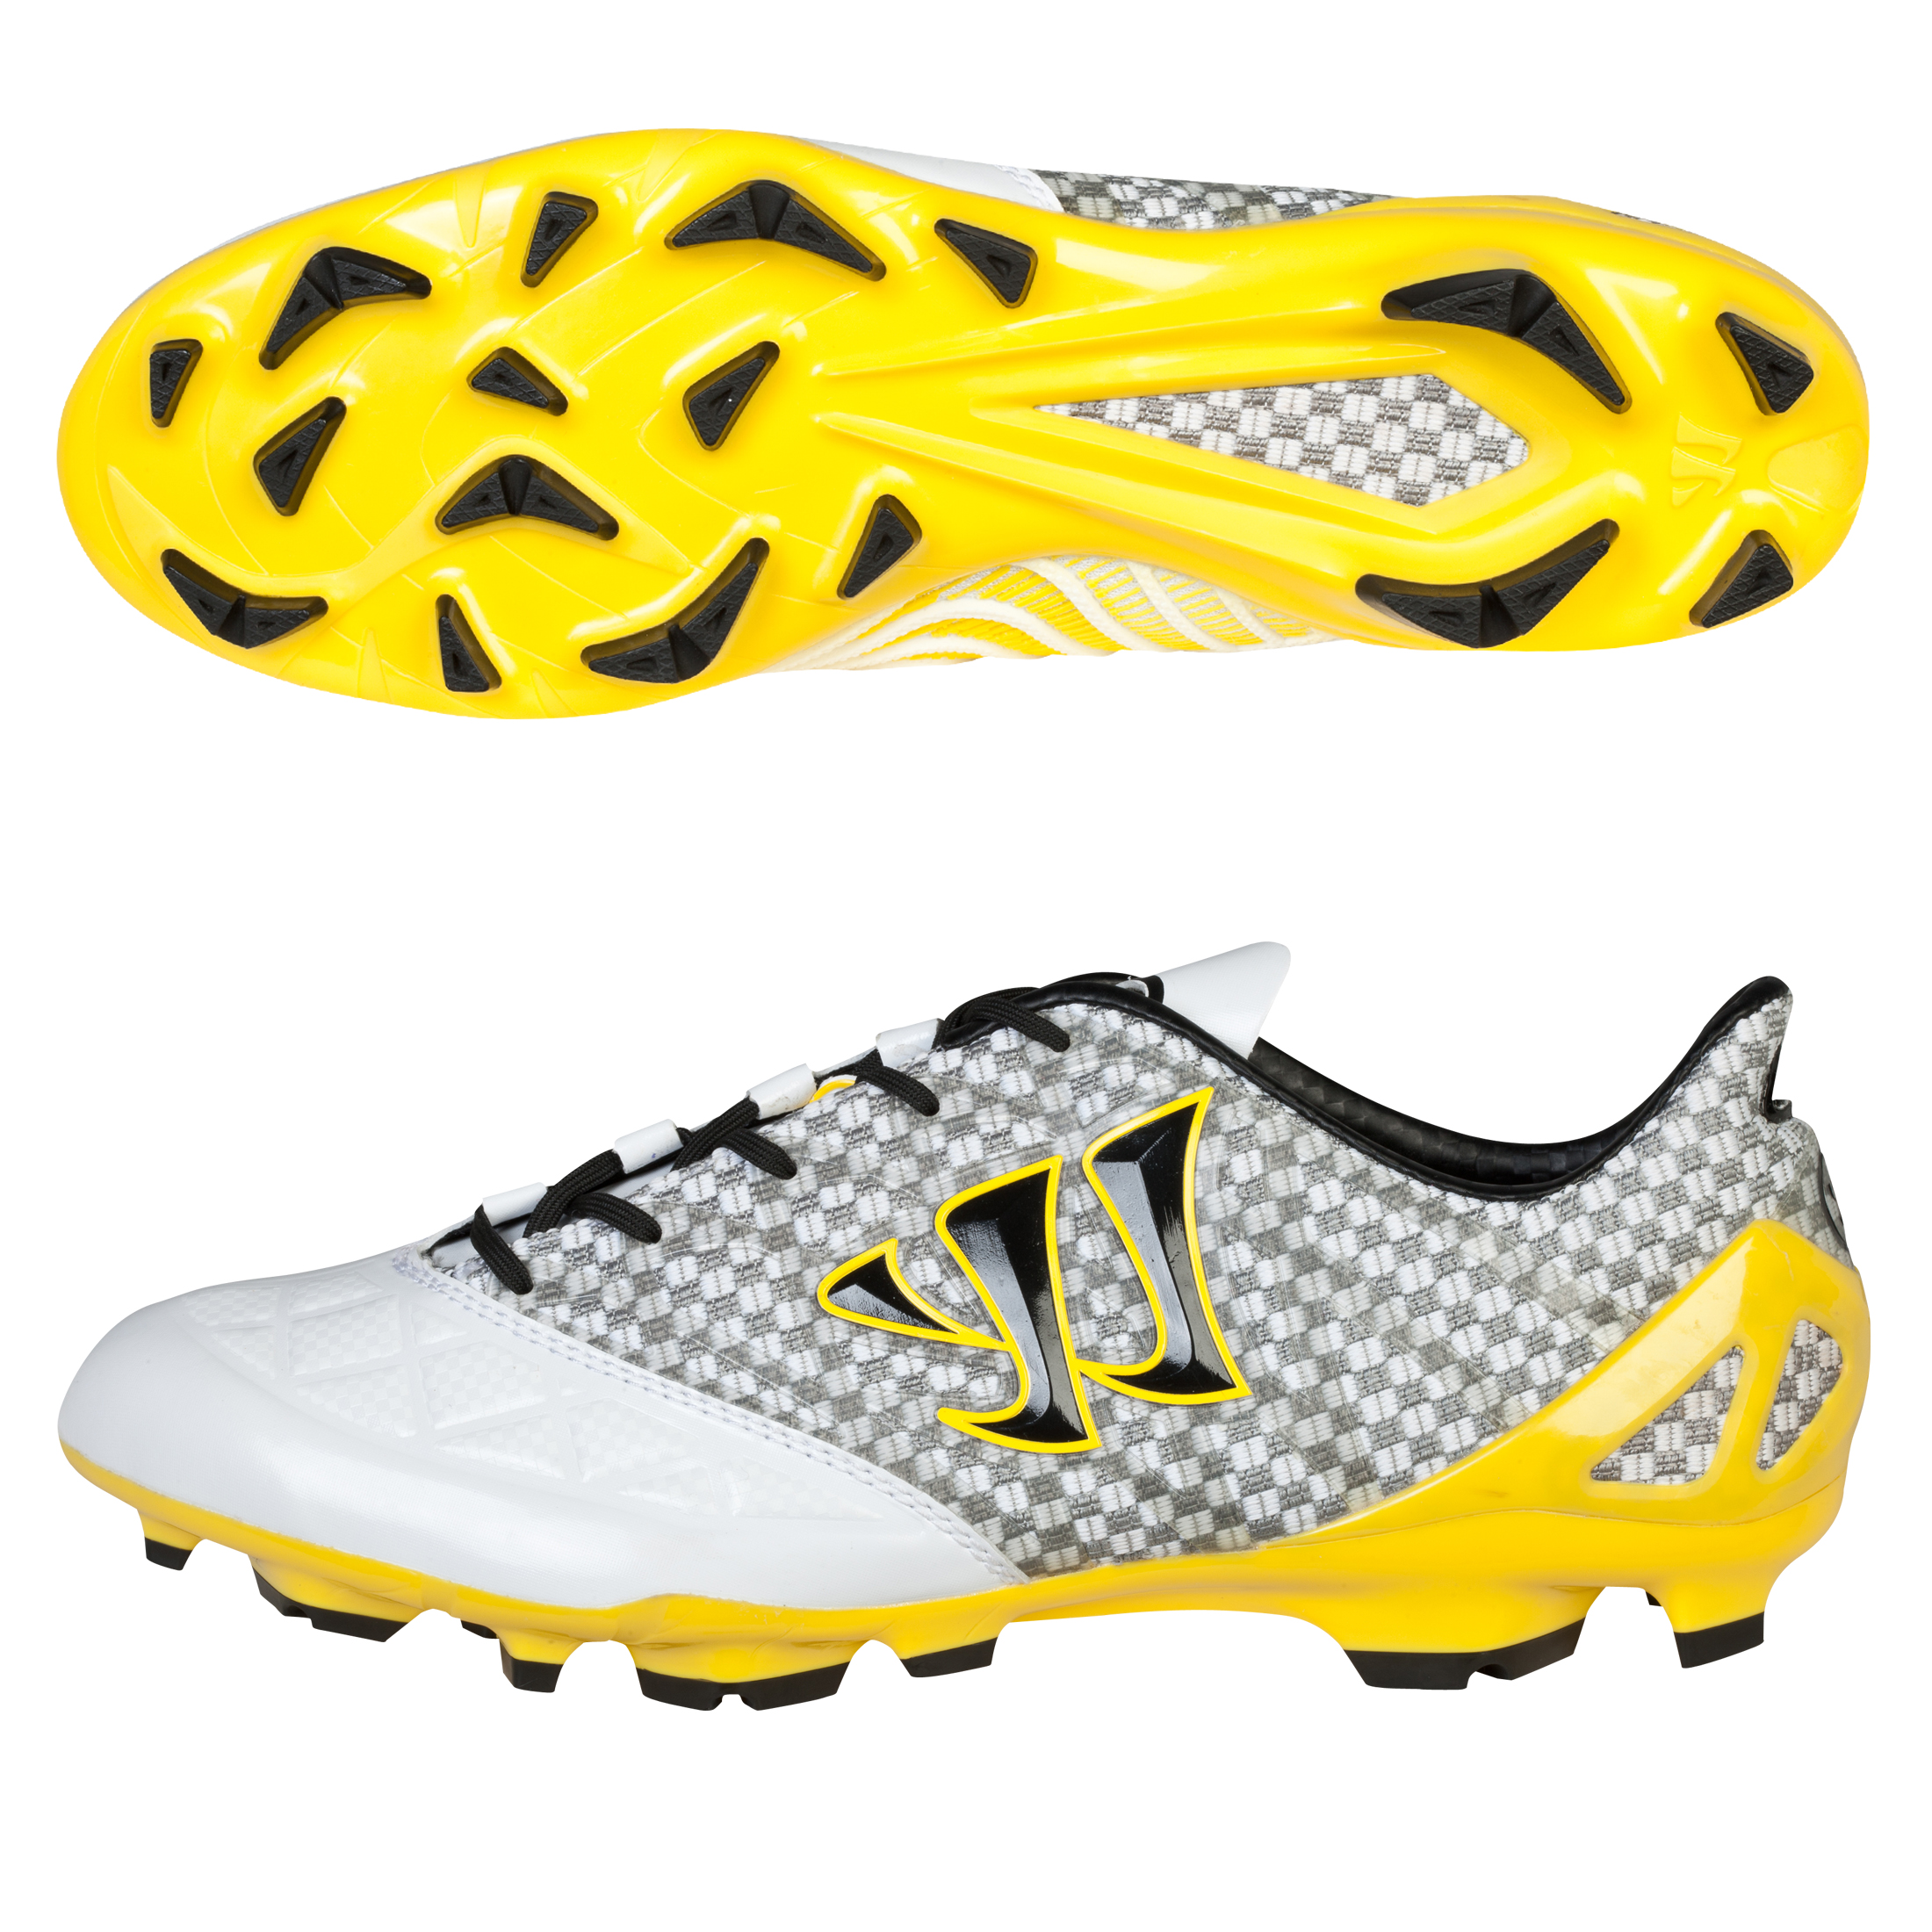 Warrior Gambler S-Lite Firm Ground Football Boots White